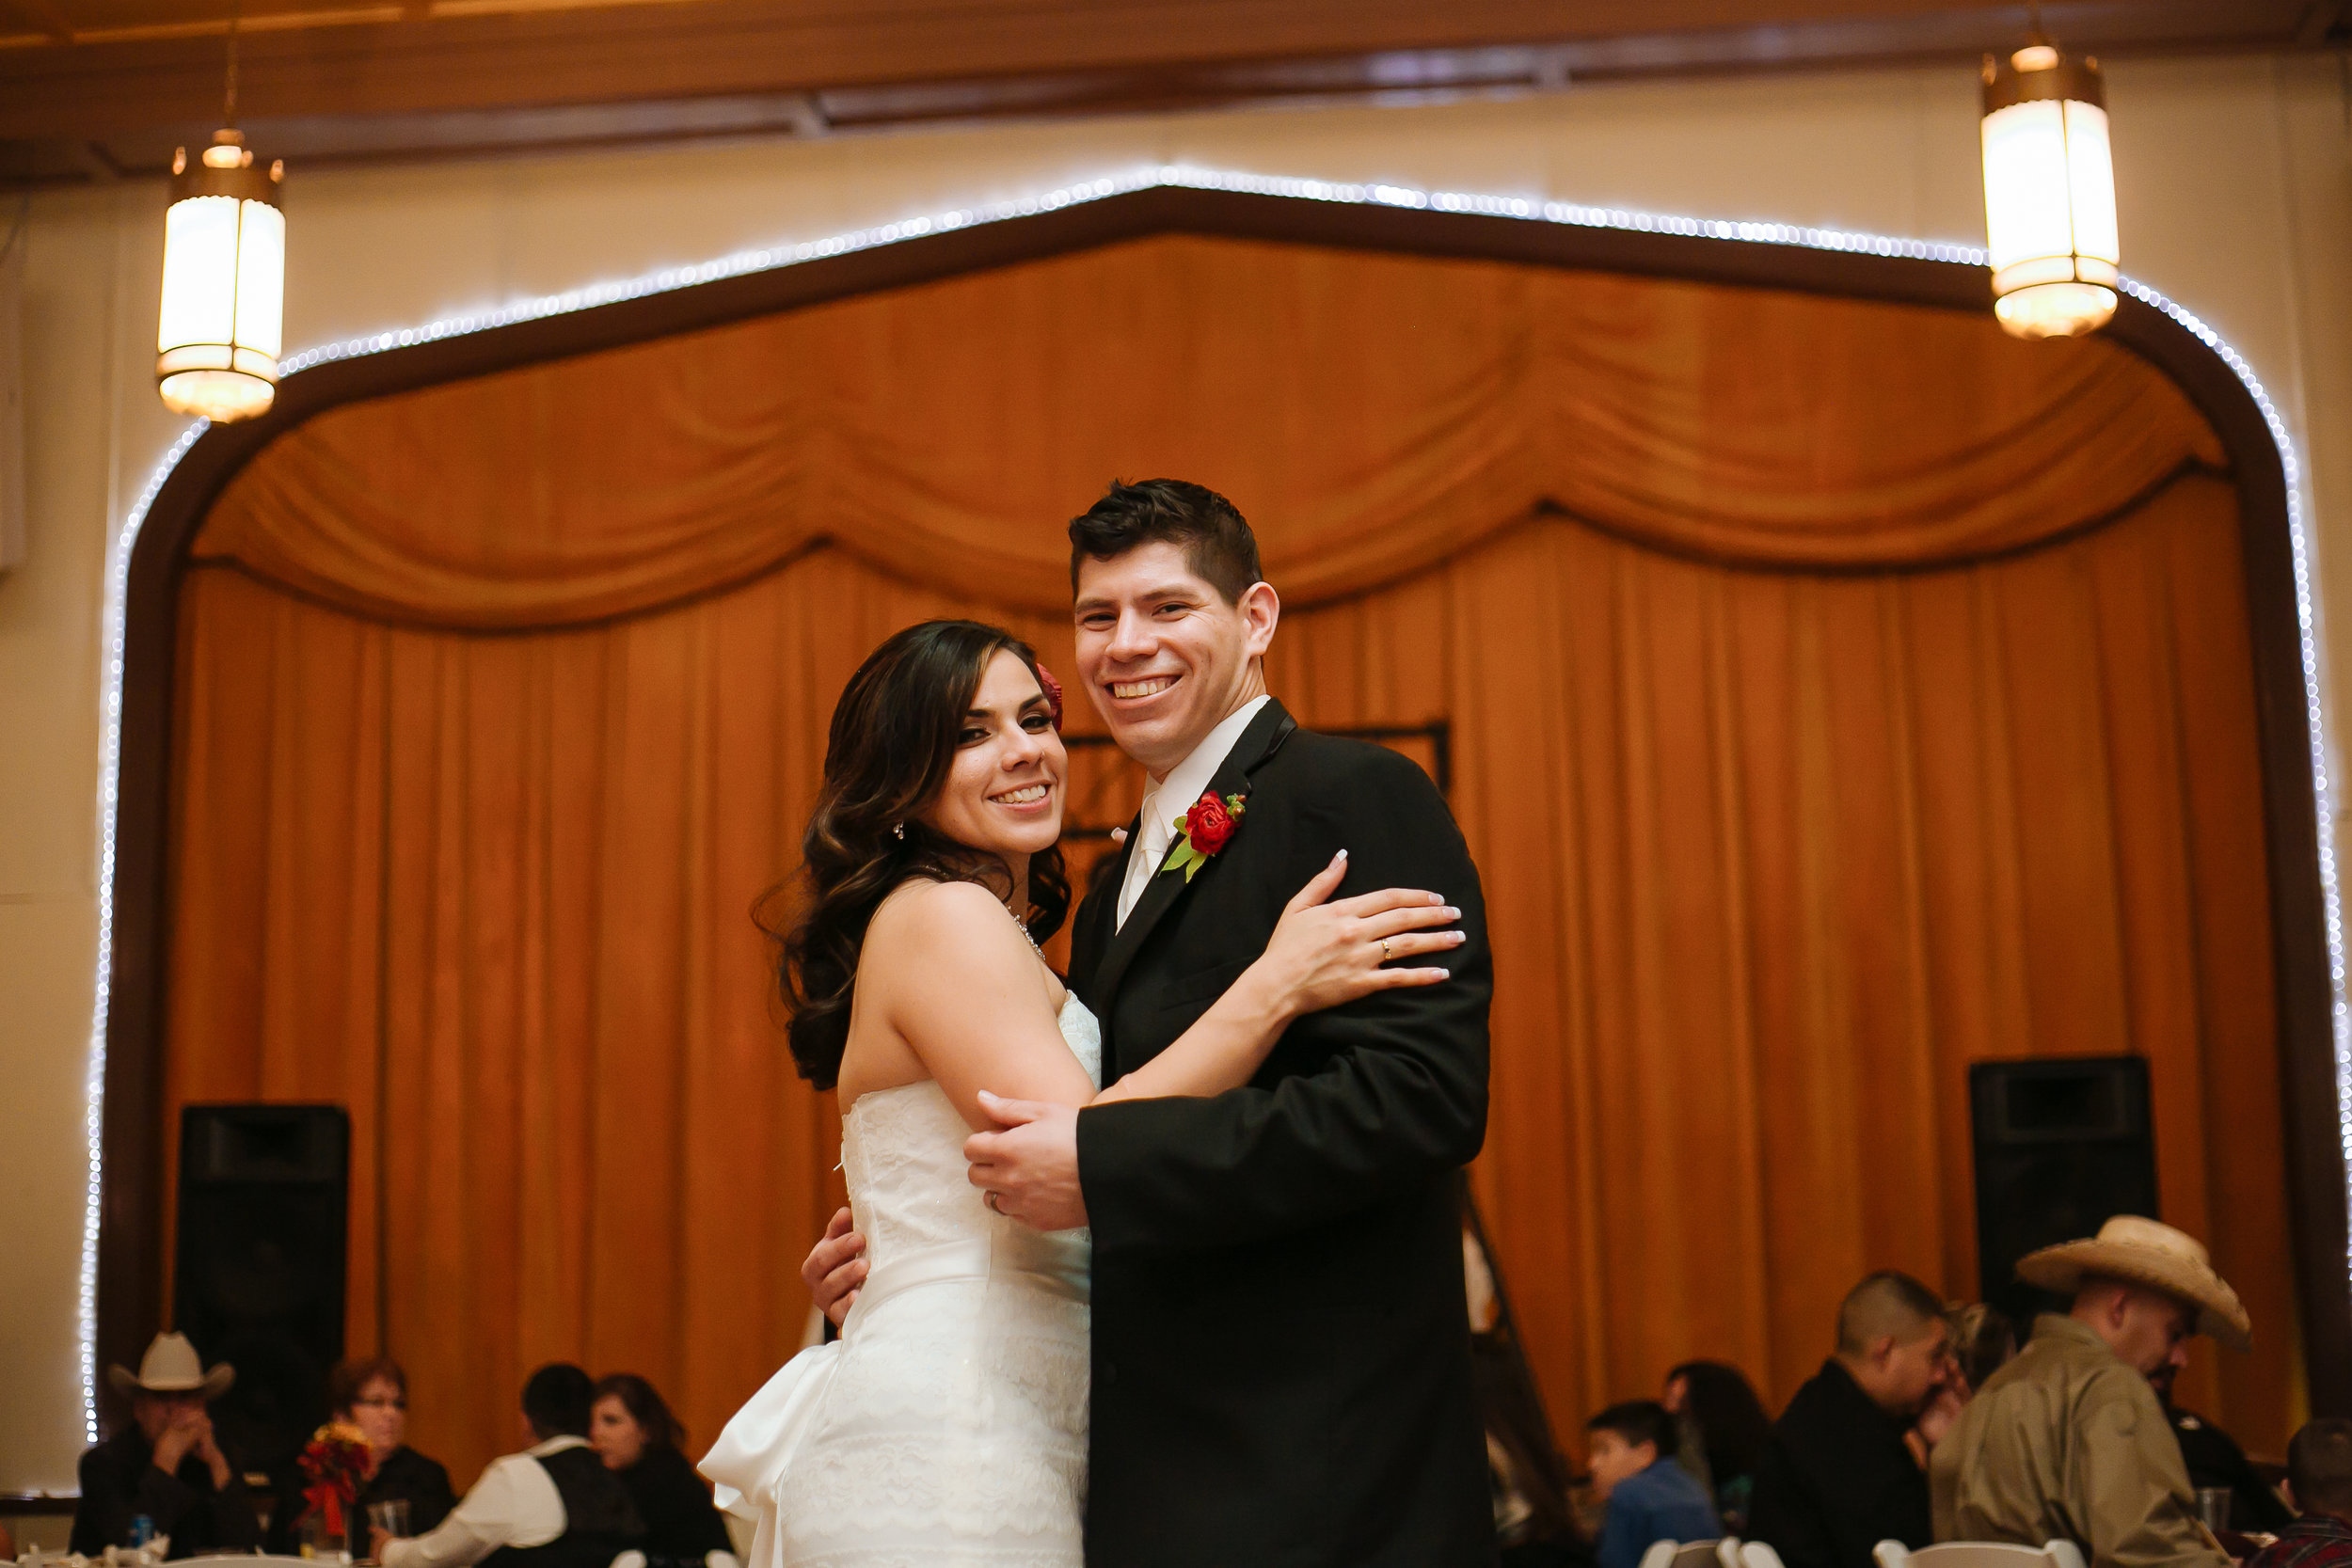 JMP2012-Gutierrez Wedding Reception (154).jpg